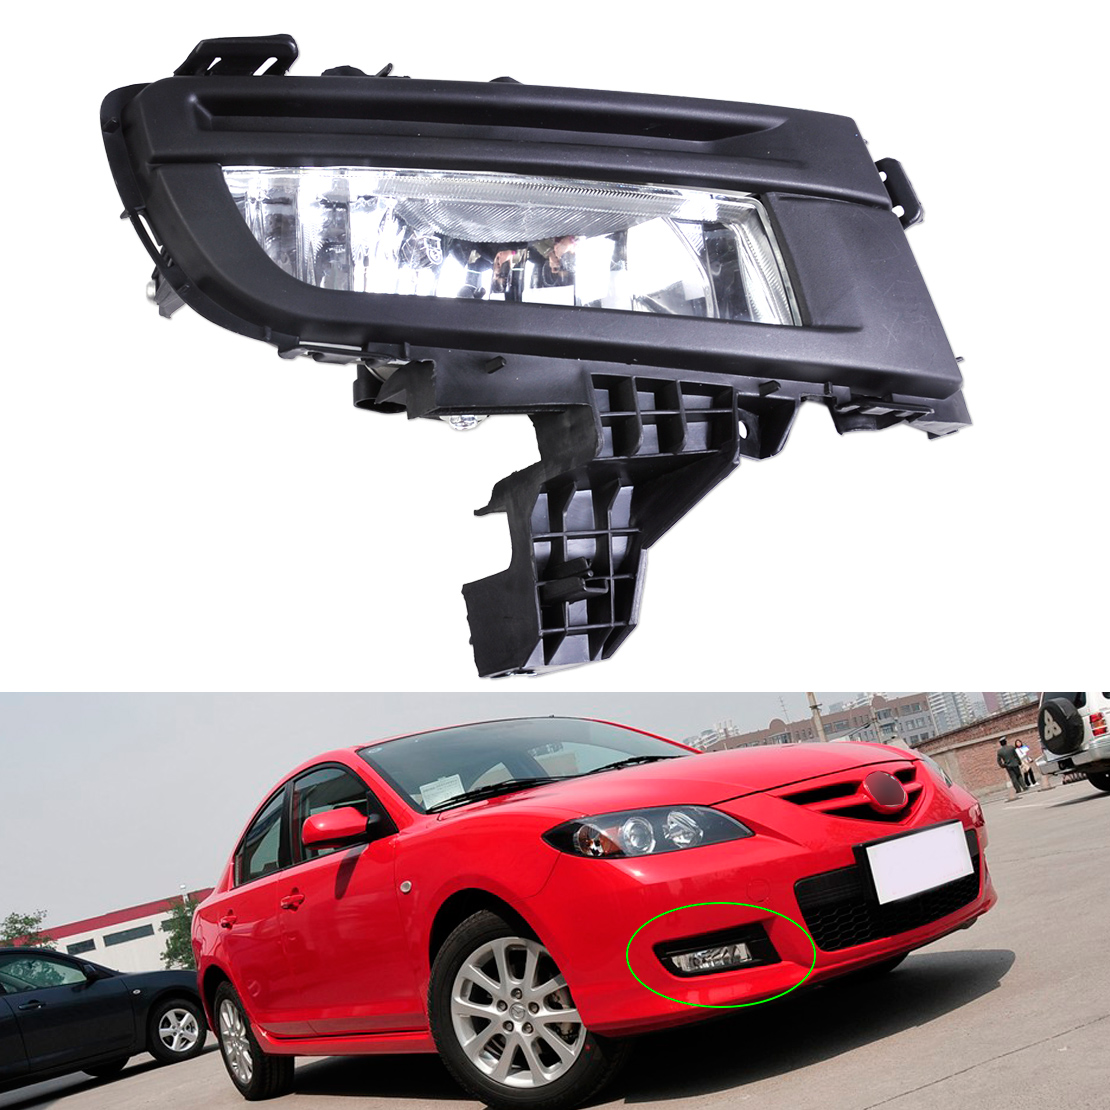 beler 1Pc high quality ABS plastic New Front Right Fog Light Lamp 9006 12V 51W for Mazda 3 2007 2008 2009 Replacement MA2592113 high quality 1 pair right